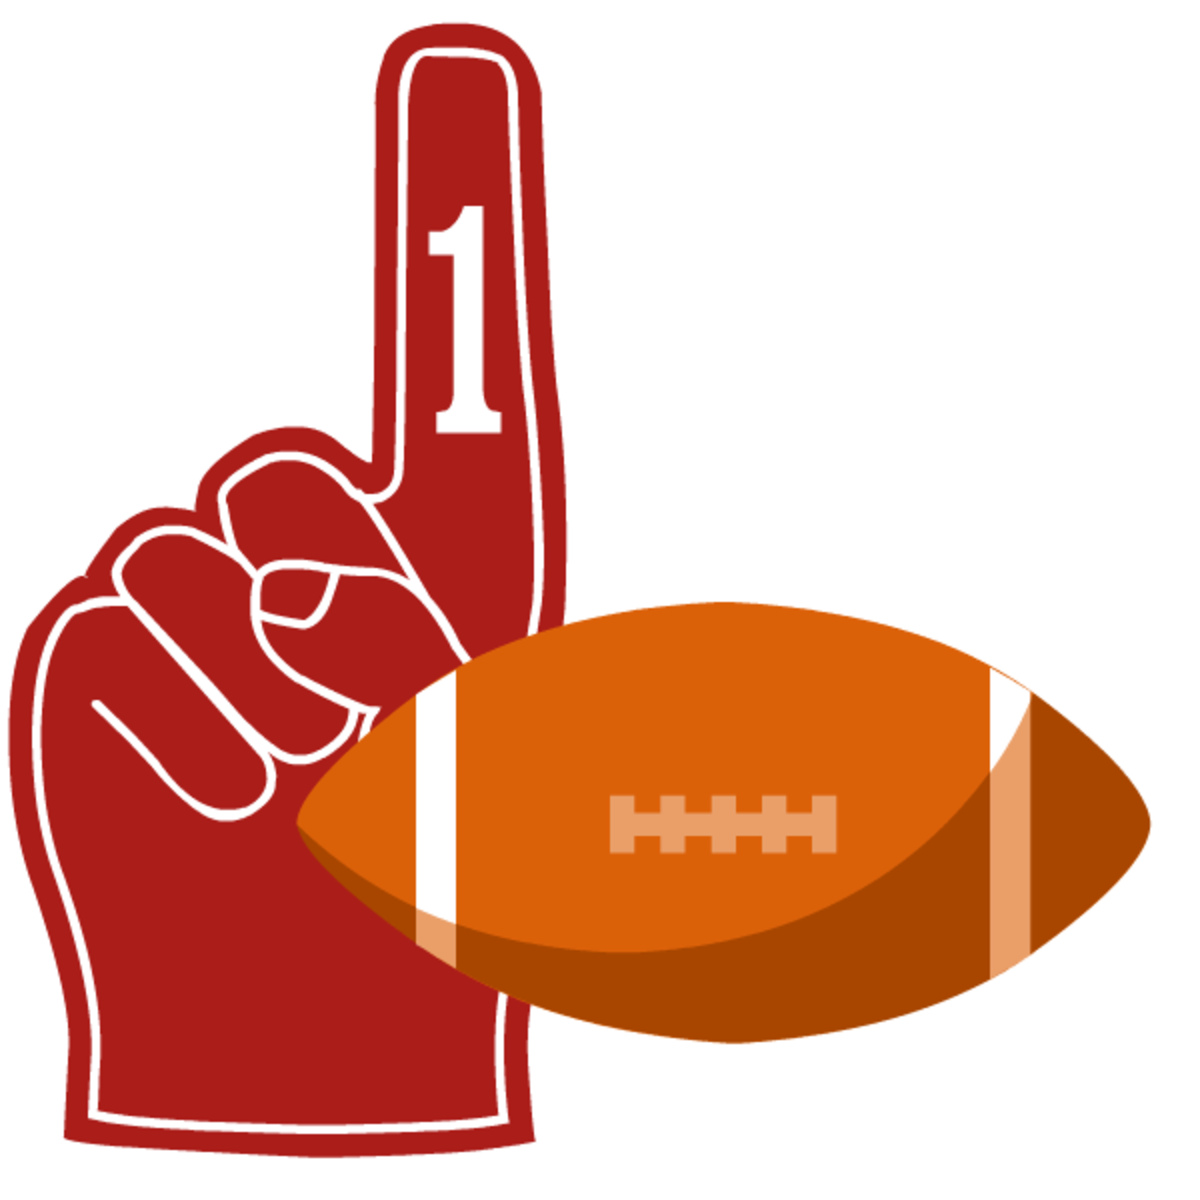 Red number one finger with football clipart